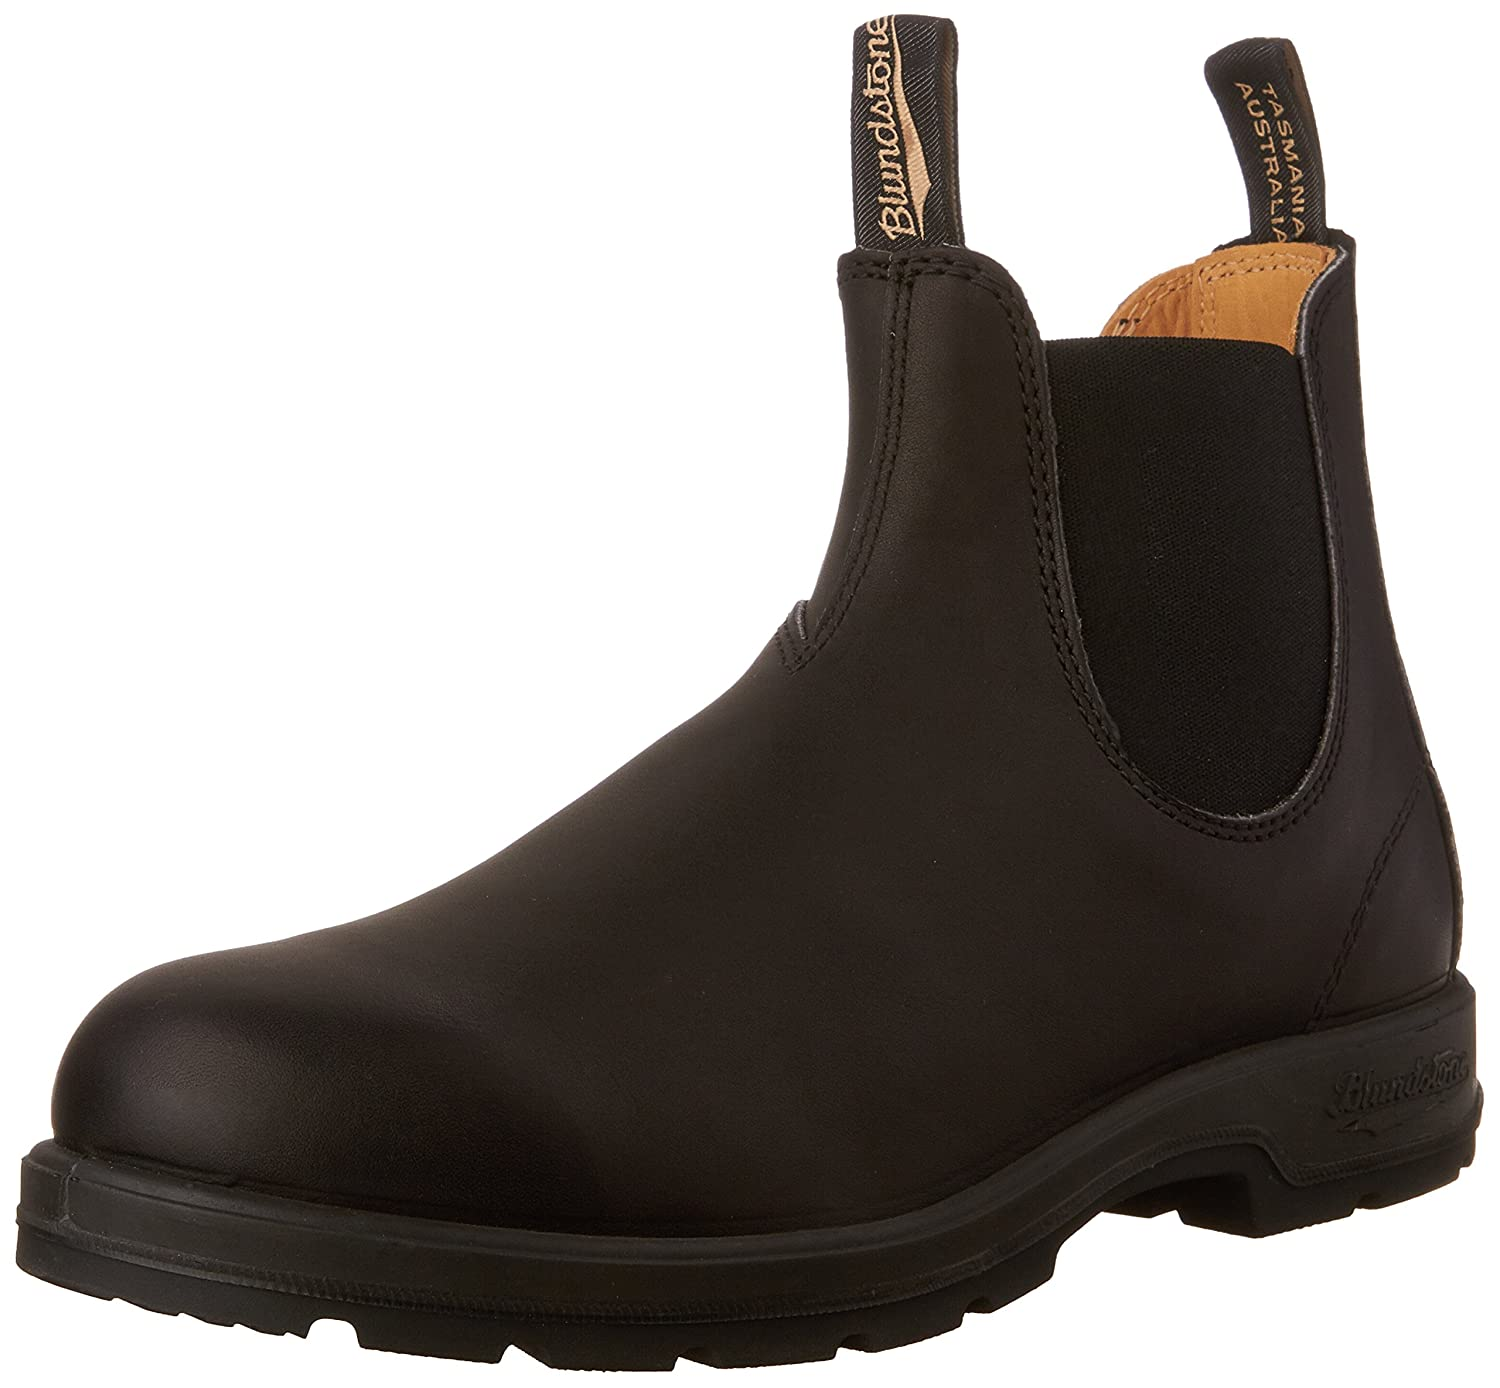 Blundstone Unisex Super 550 Series Boot B0029F27SM 6.5 UK/7.5 M US/9.5 B(M) US|Black